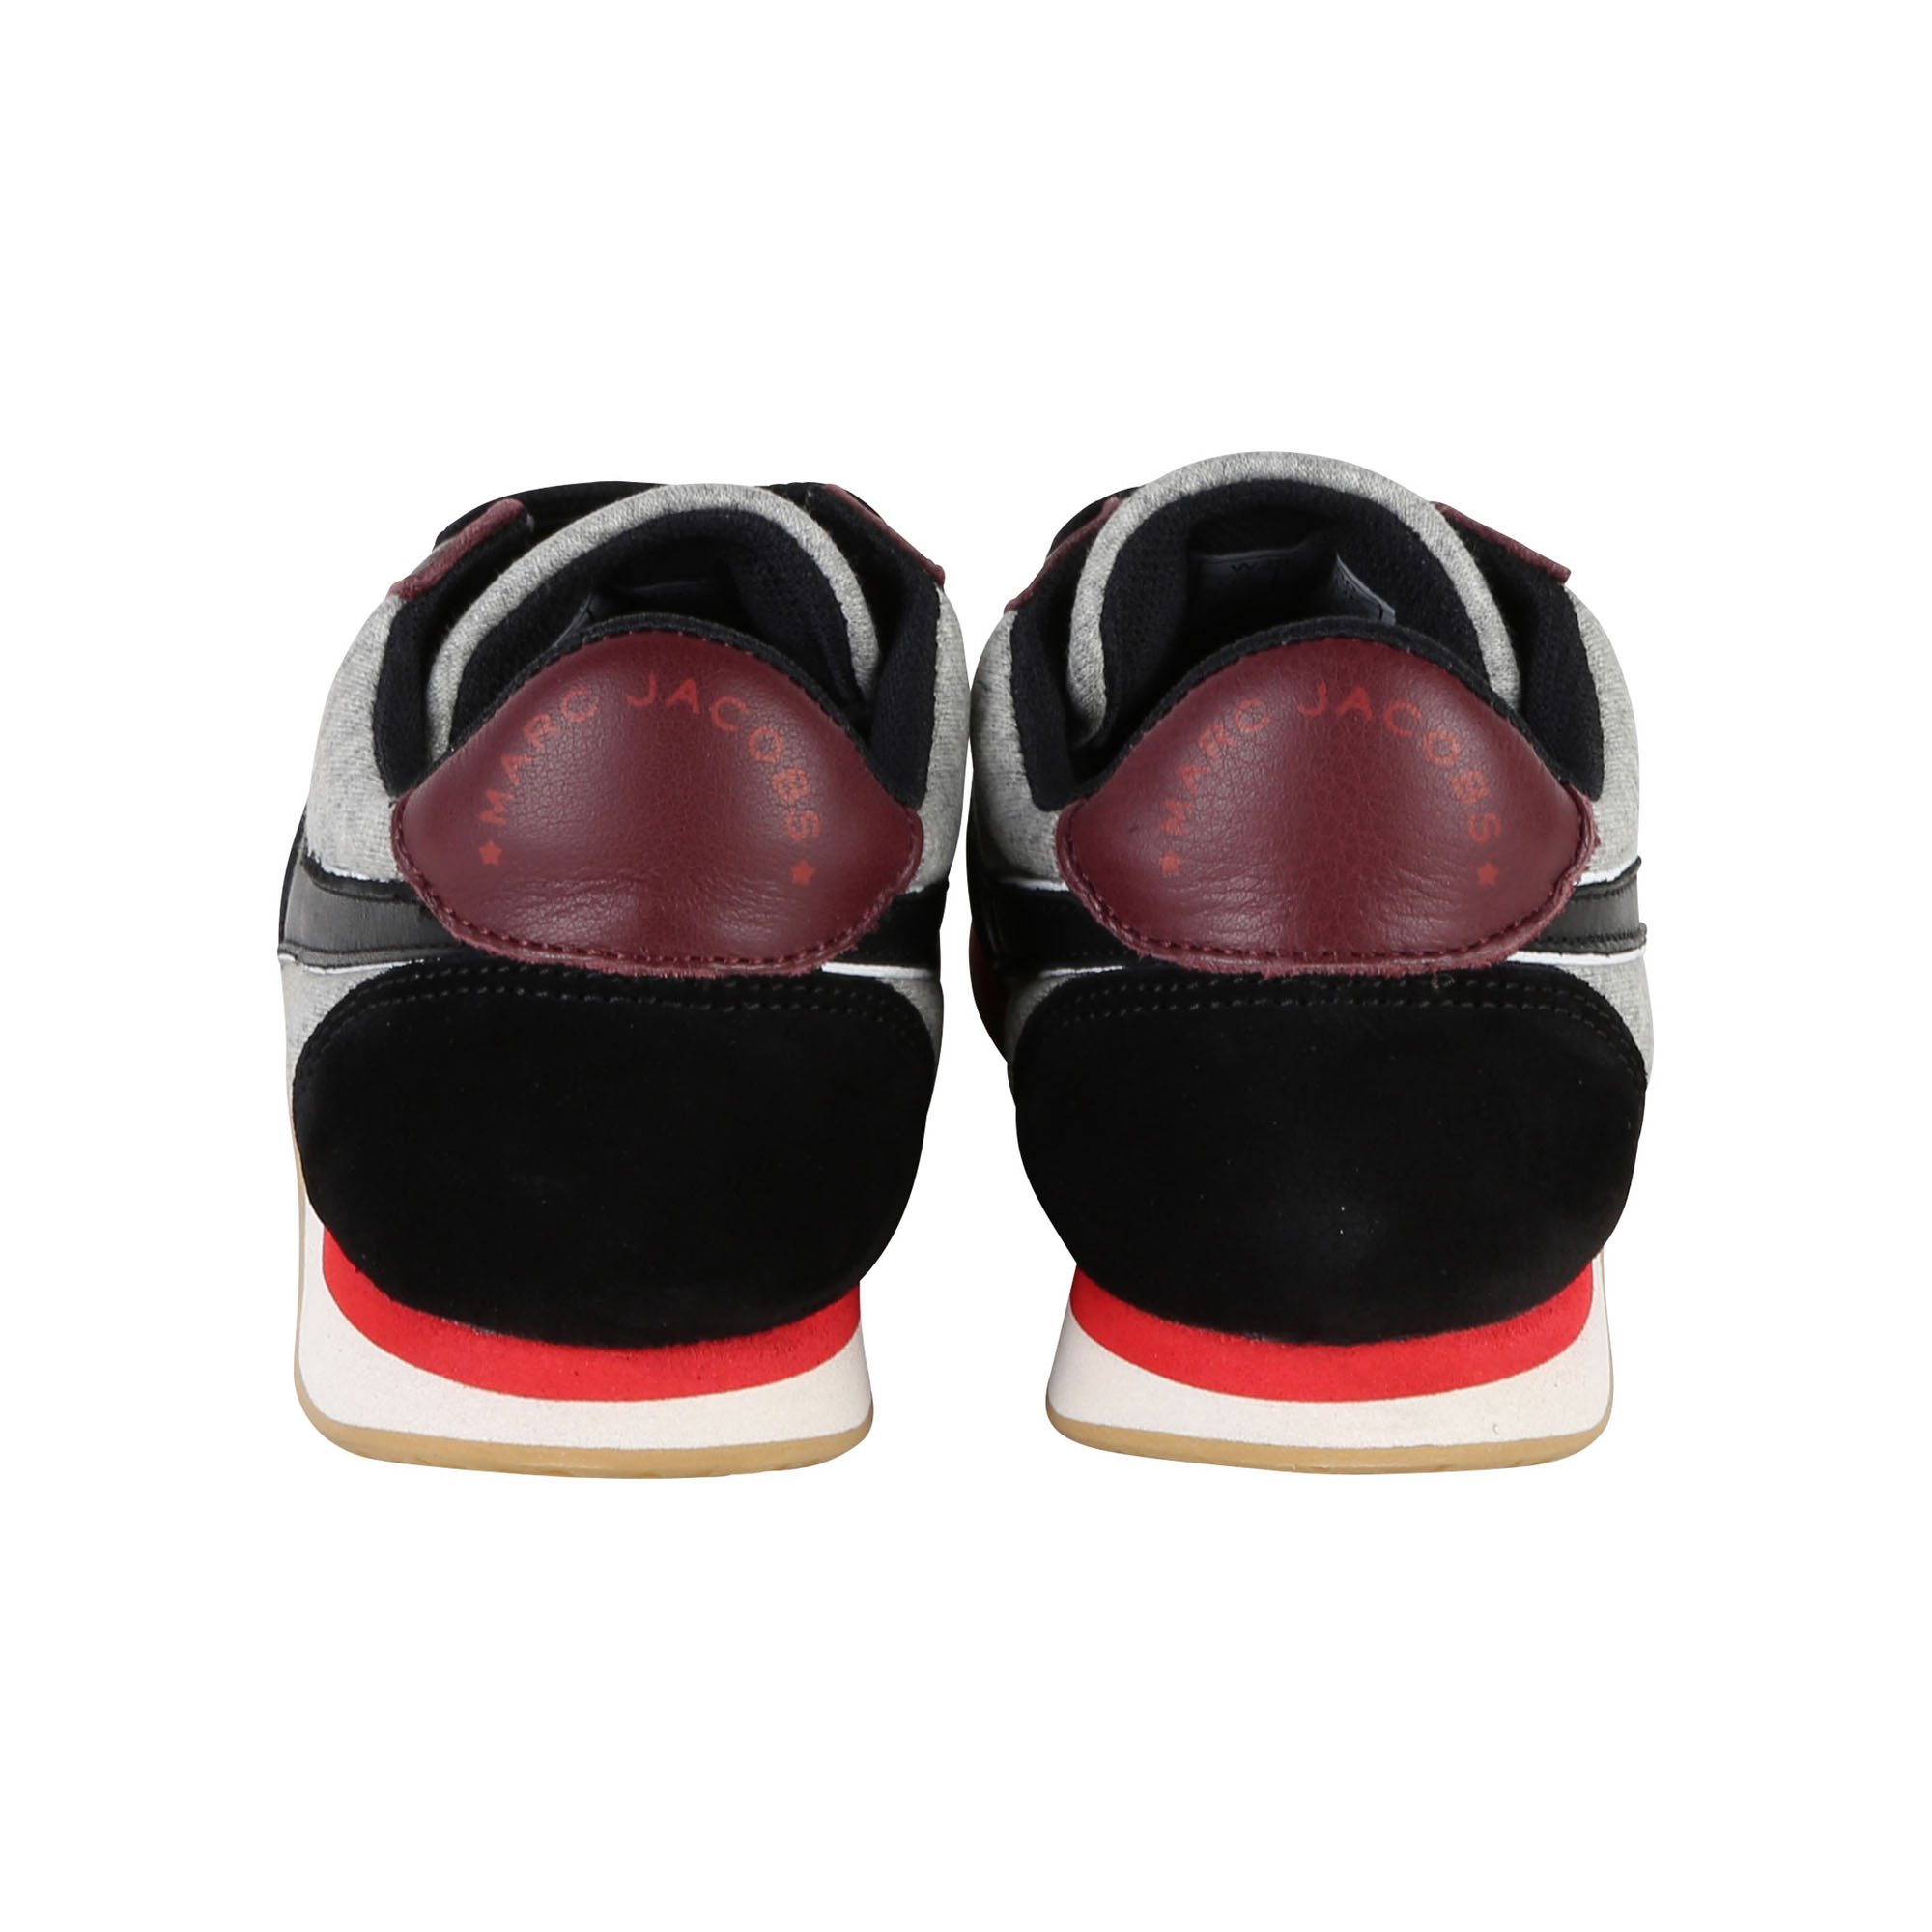 Sneakers mini-me LITTLE MARC JACOBS pour GARCON